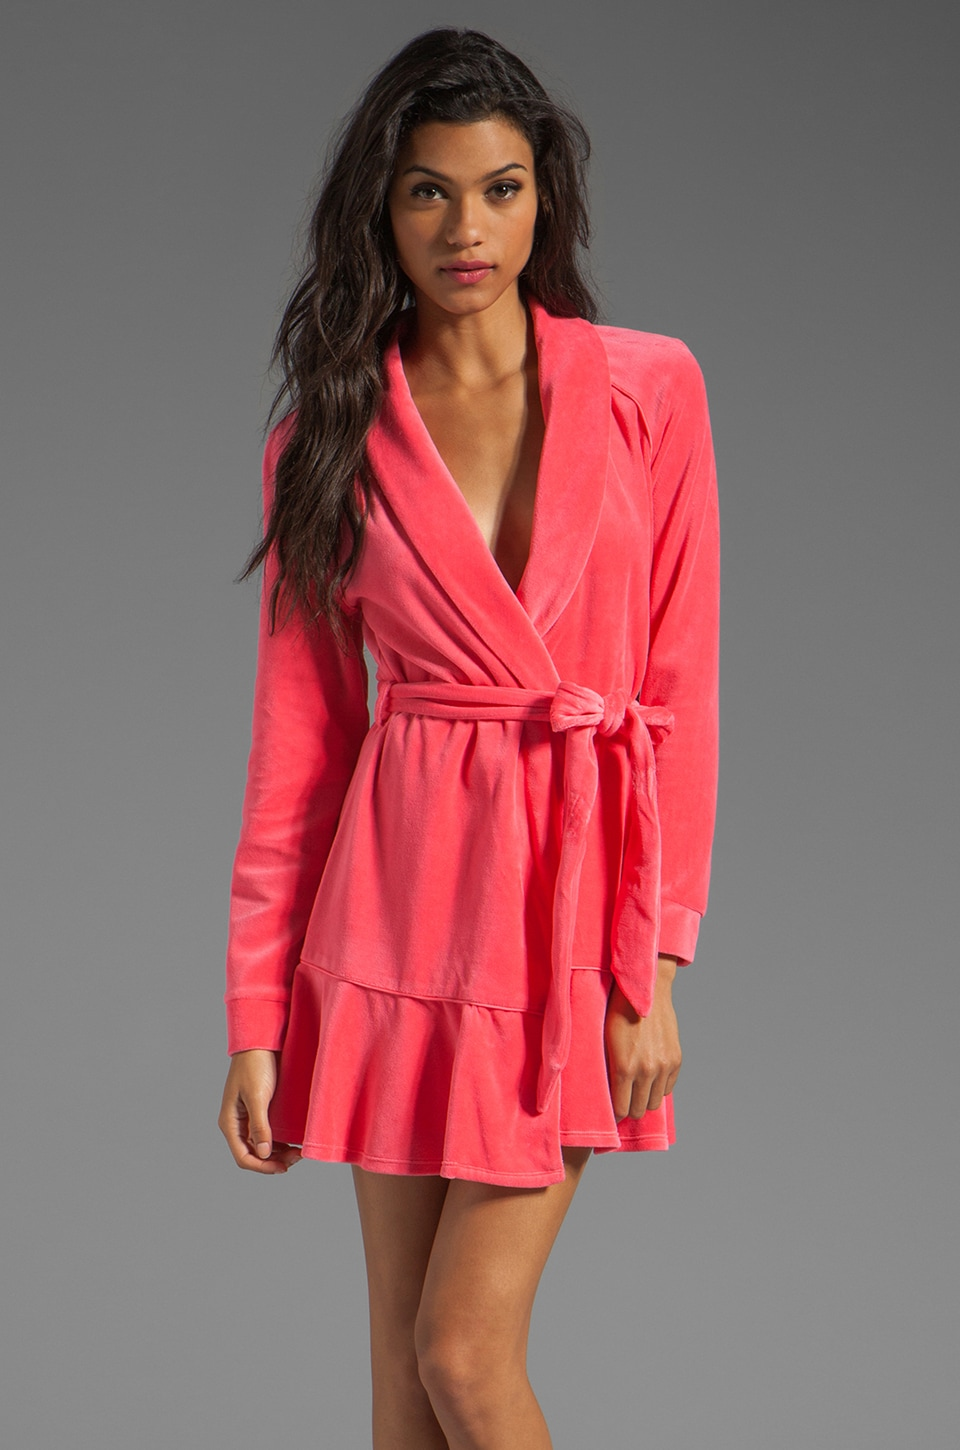 Juicy Couture Velour Robe in Bombshell